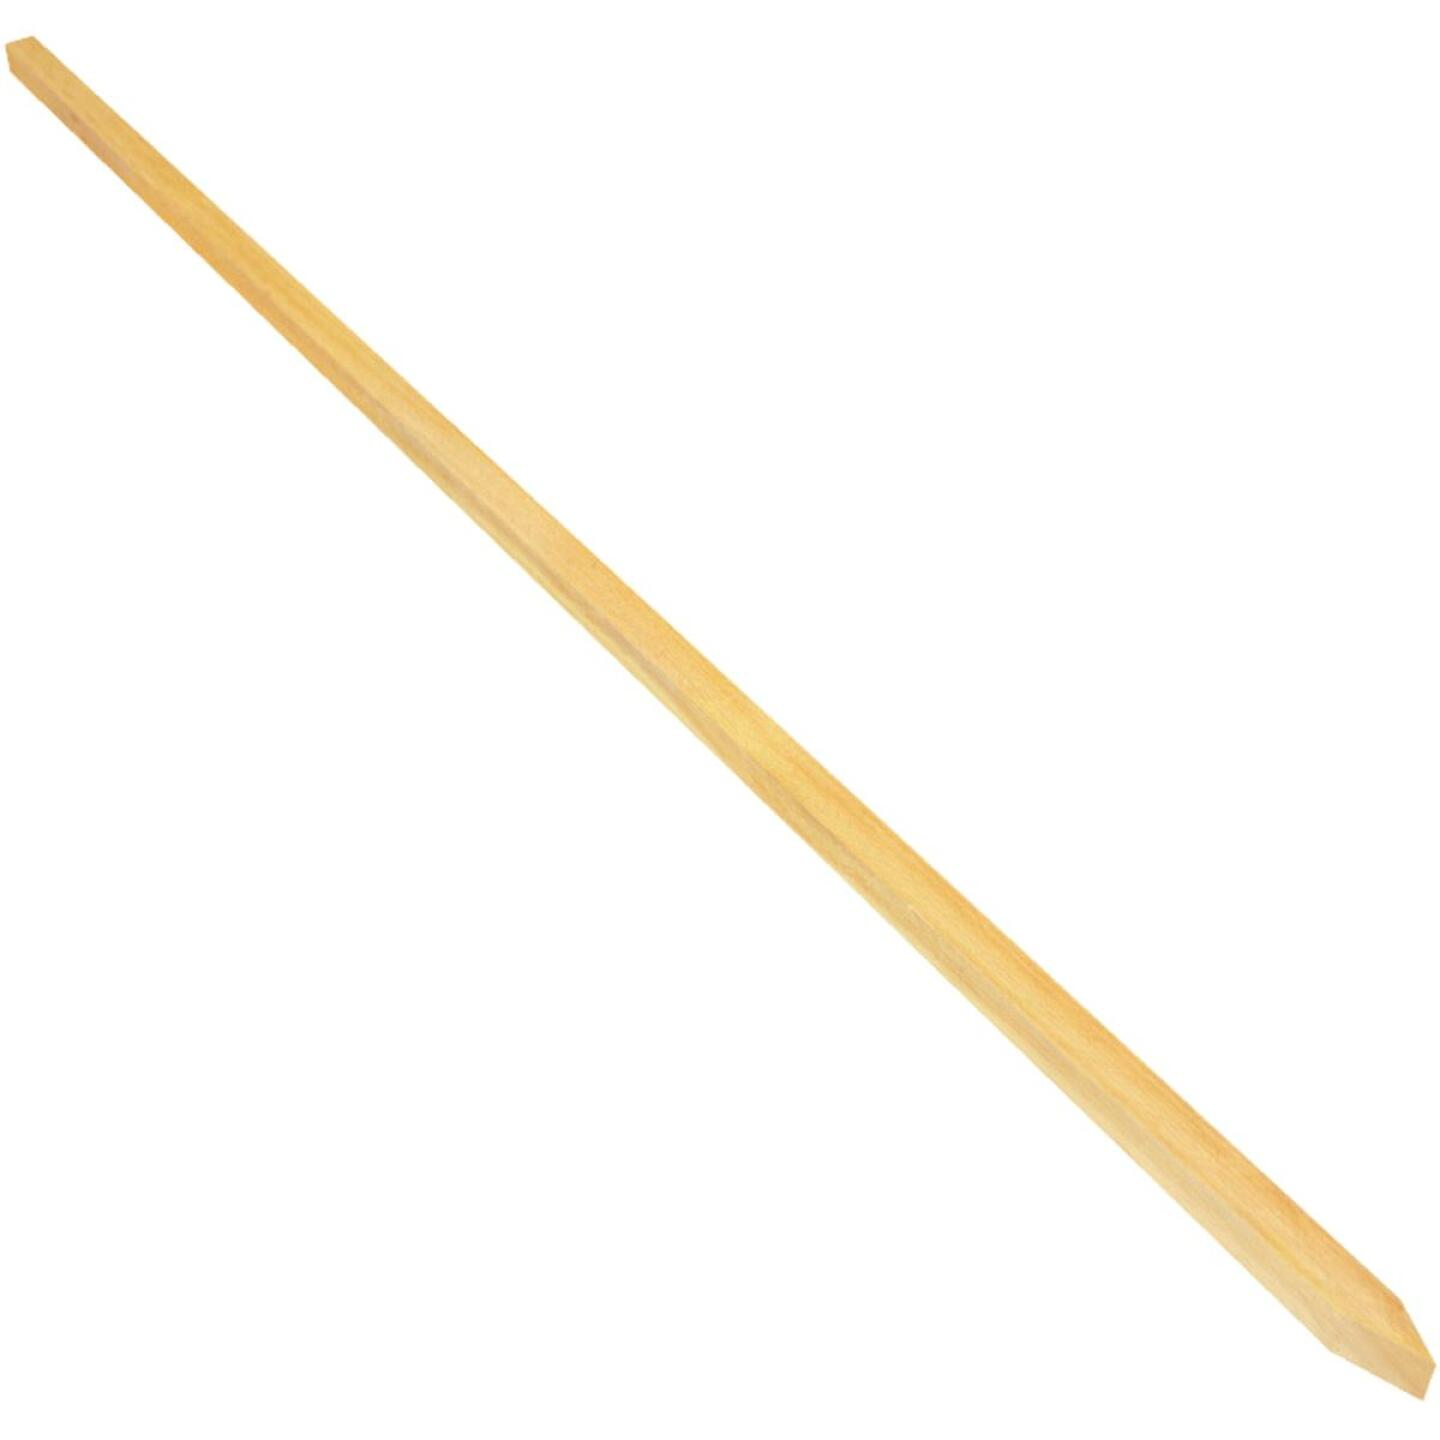 Greenes Fence 5 Ft. Wood Plant Stake Image 1